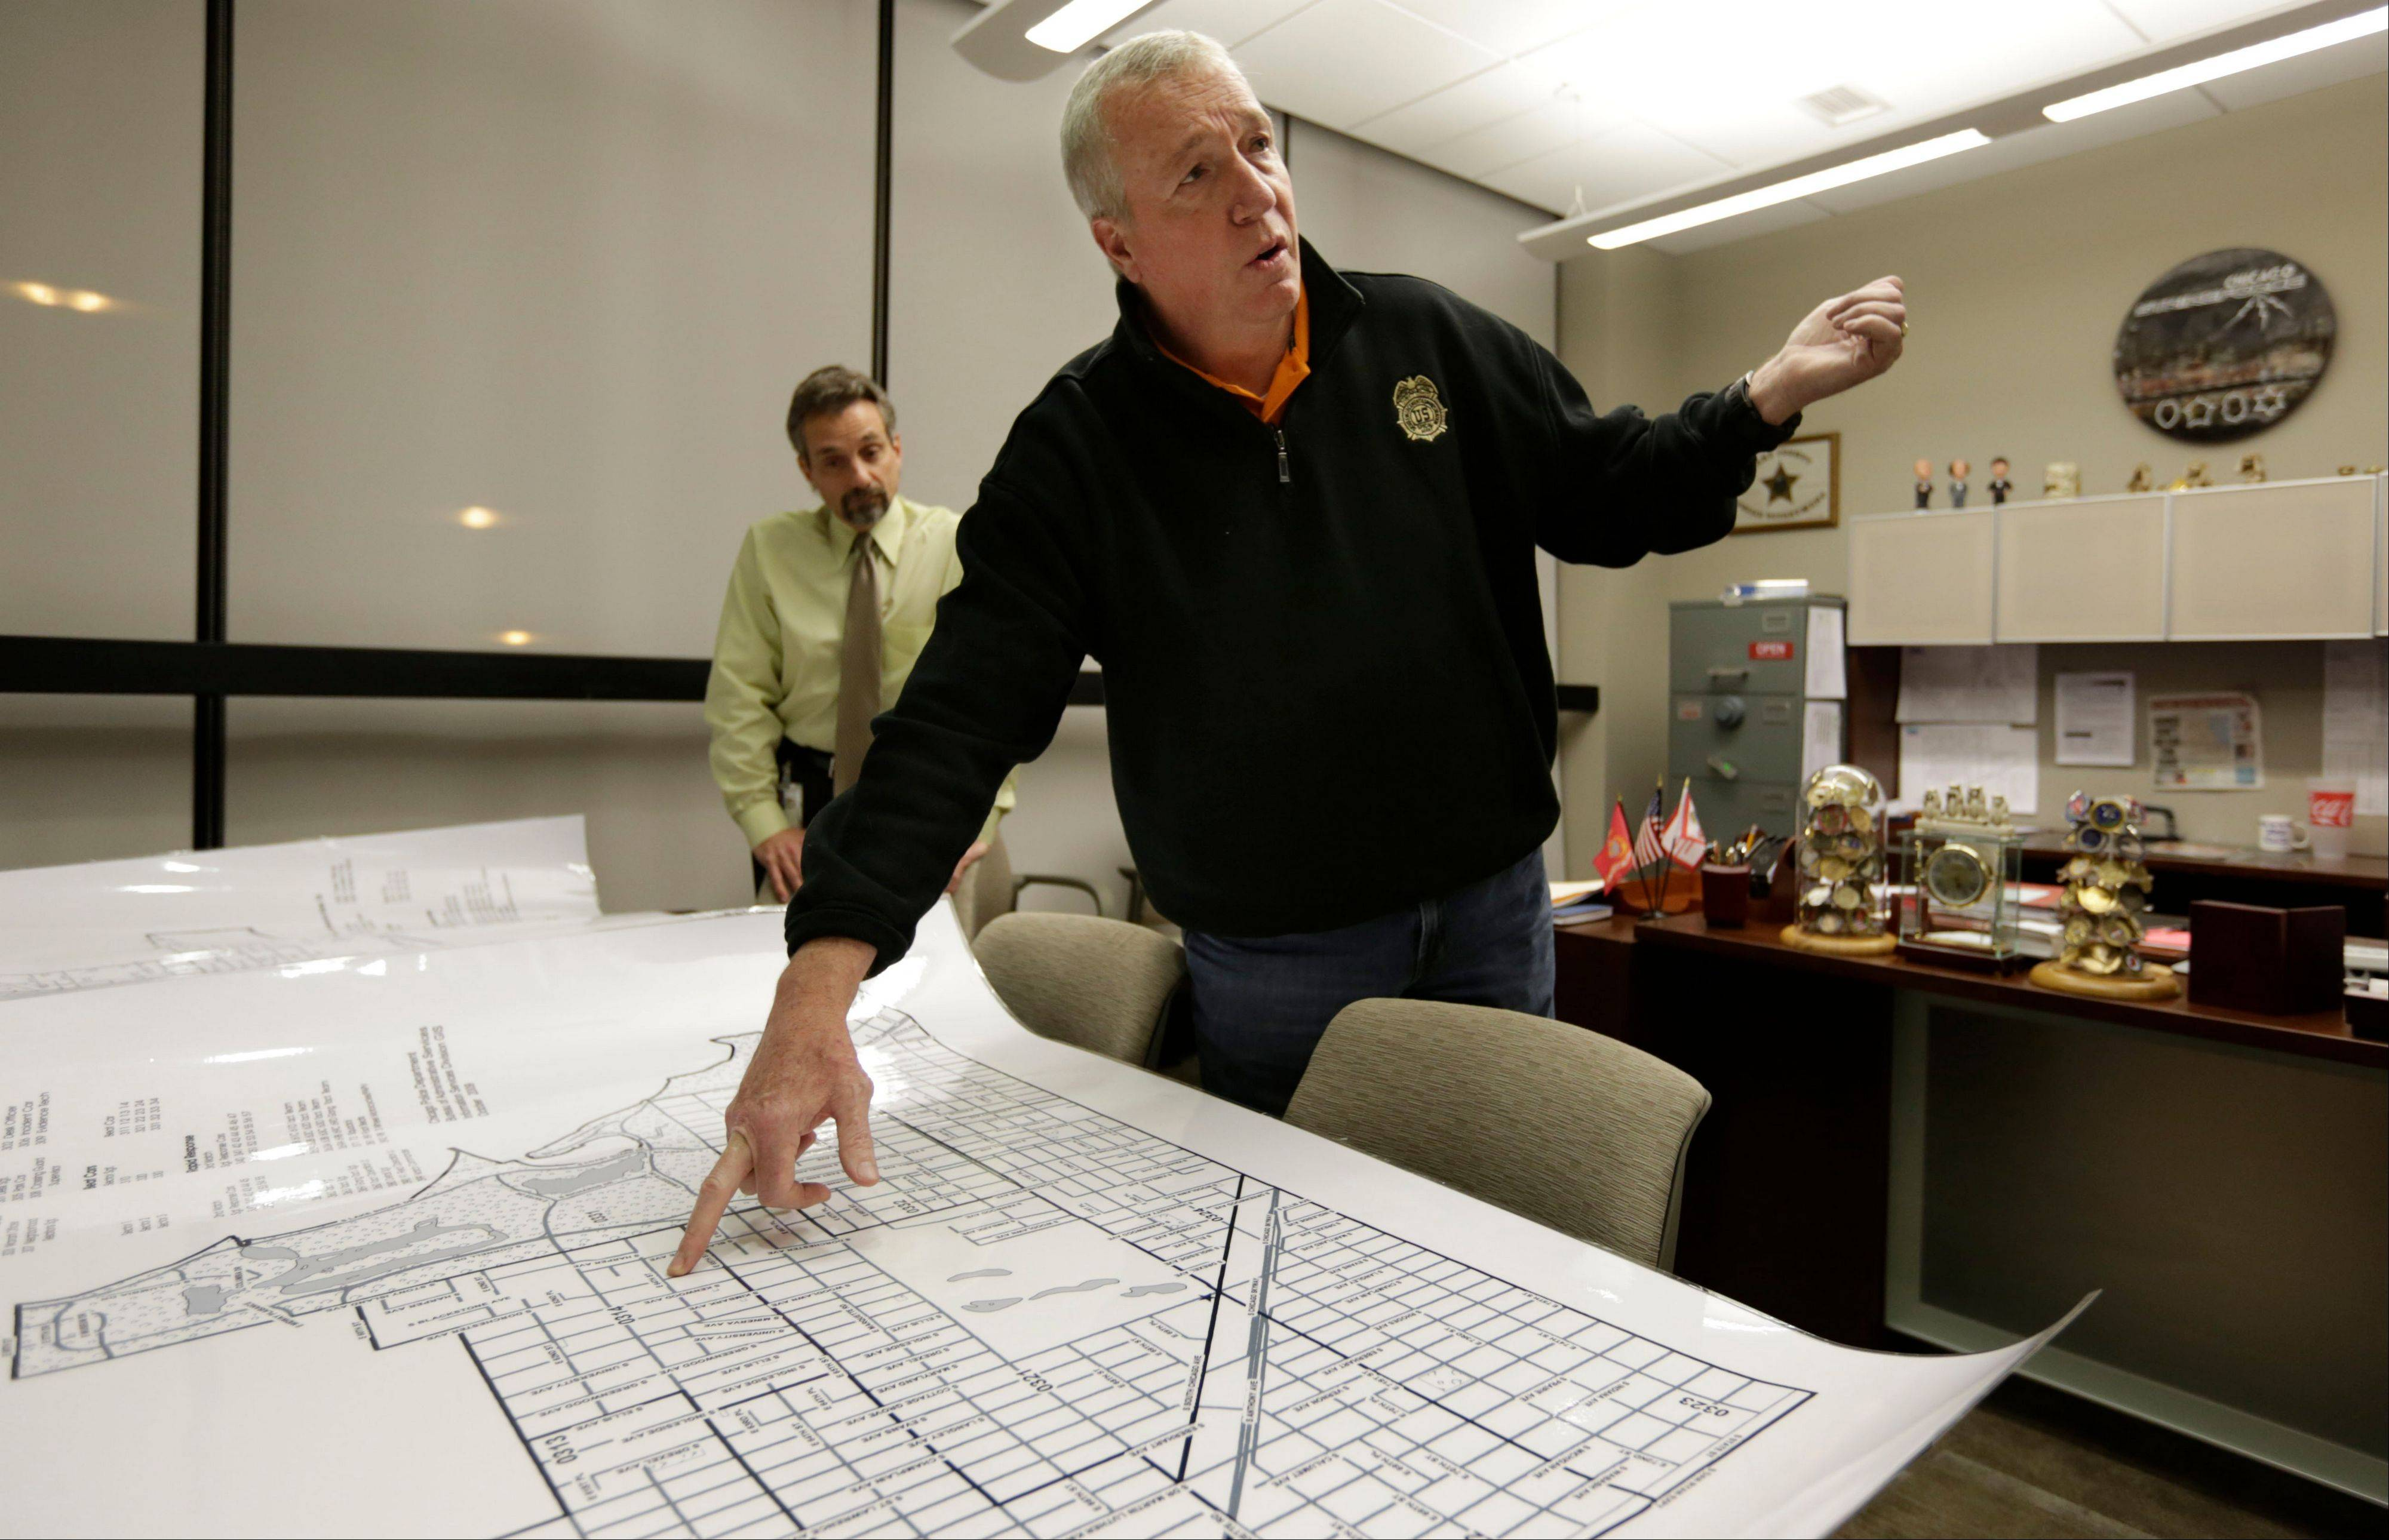 Jack Riley, head of the Drug Enforcement Administration in Chicago, points out local Mexican drug cartel problem areas on a map in the new interagency Strike Force office in Chicago. Looking on is DEA agent Vince Balbo. The ruthless syndicates have long been the nation's No. 1 supplier of illegal drugs, but in the past, their operatives rarely ventured beyond the border. A wide-ranging Associated Press review of federal court cases and government drug-enforcement data, plus interviews with many top law enforcement officials, indicate the groups have begun deploying agents from their inner circles to the U.S.